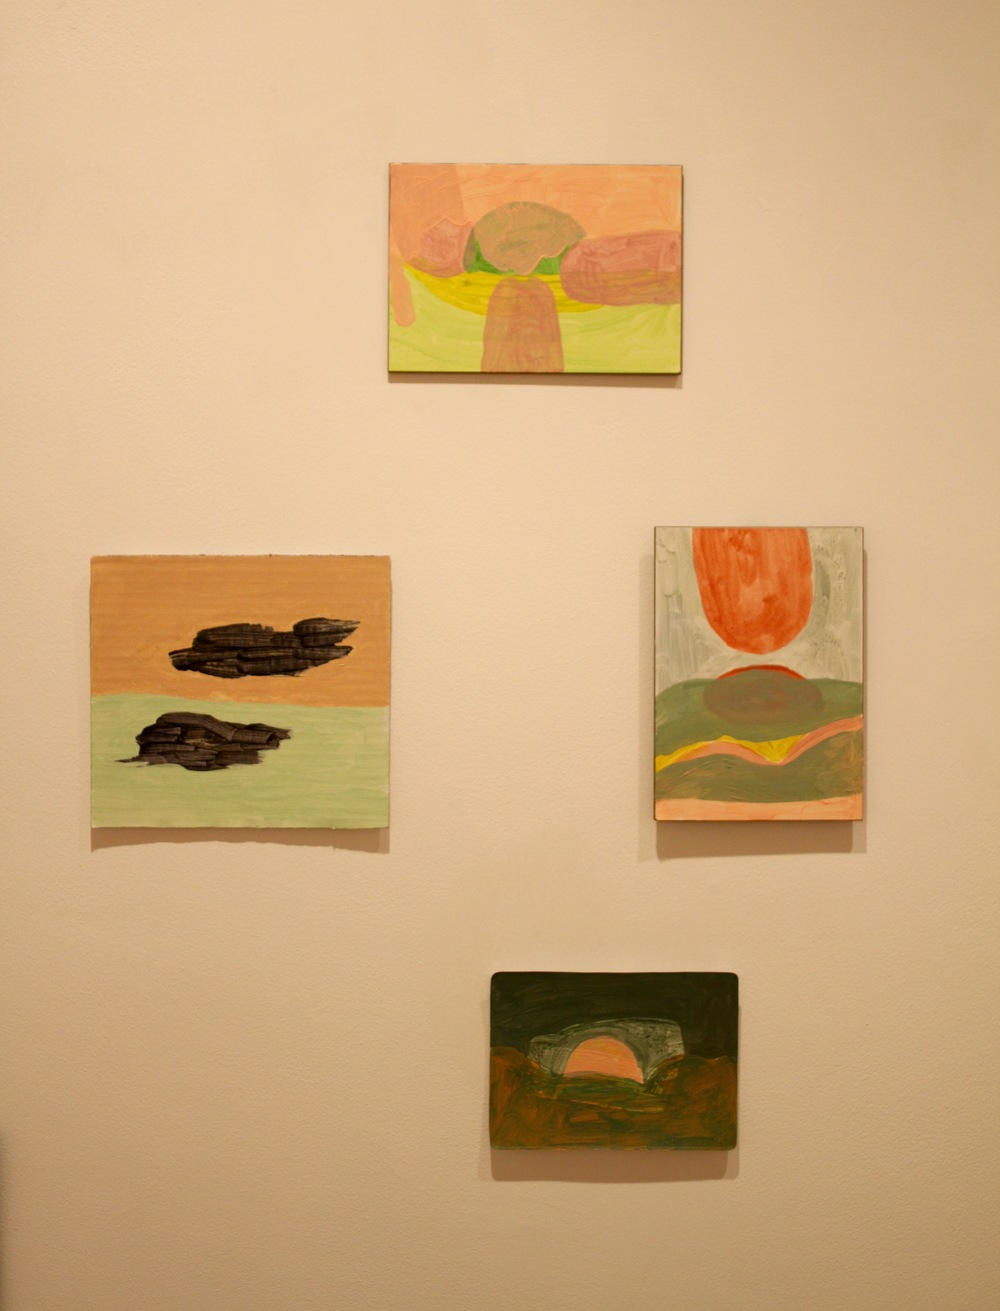 "T. Tongues at work. 2015. Acrylic on Board (4 7/8""x 7"")  B. Pink bump. 2015. Acrylic on Cardstock (4 1/4""x 5 7/8"")  L. The cloud is dark. 2015. Acrylic on Cardboard (6 3/8""x 7 1/16""  R. Tongues rise. 2015. Acrylic on Board (7""x 4 7/8"")"